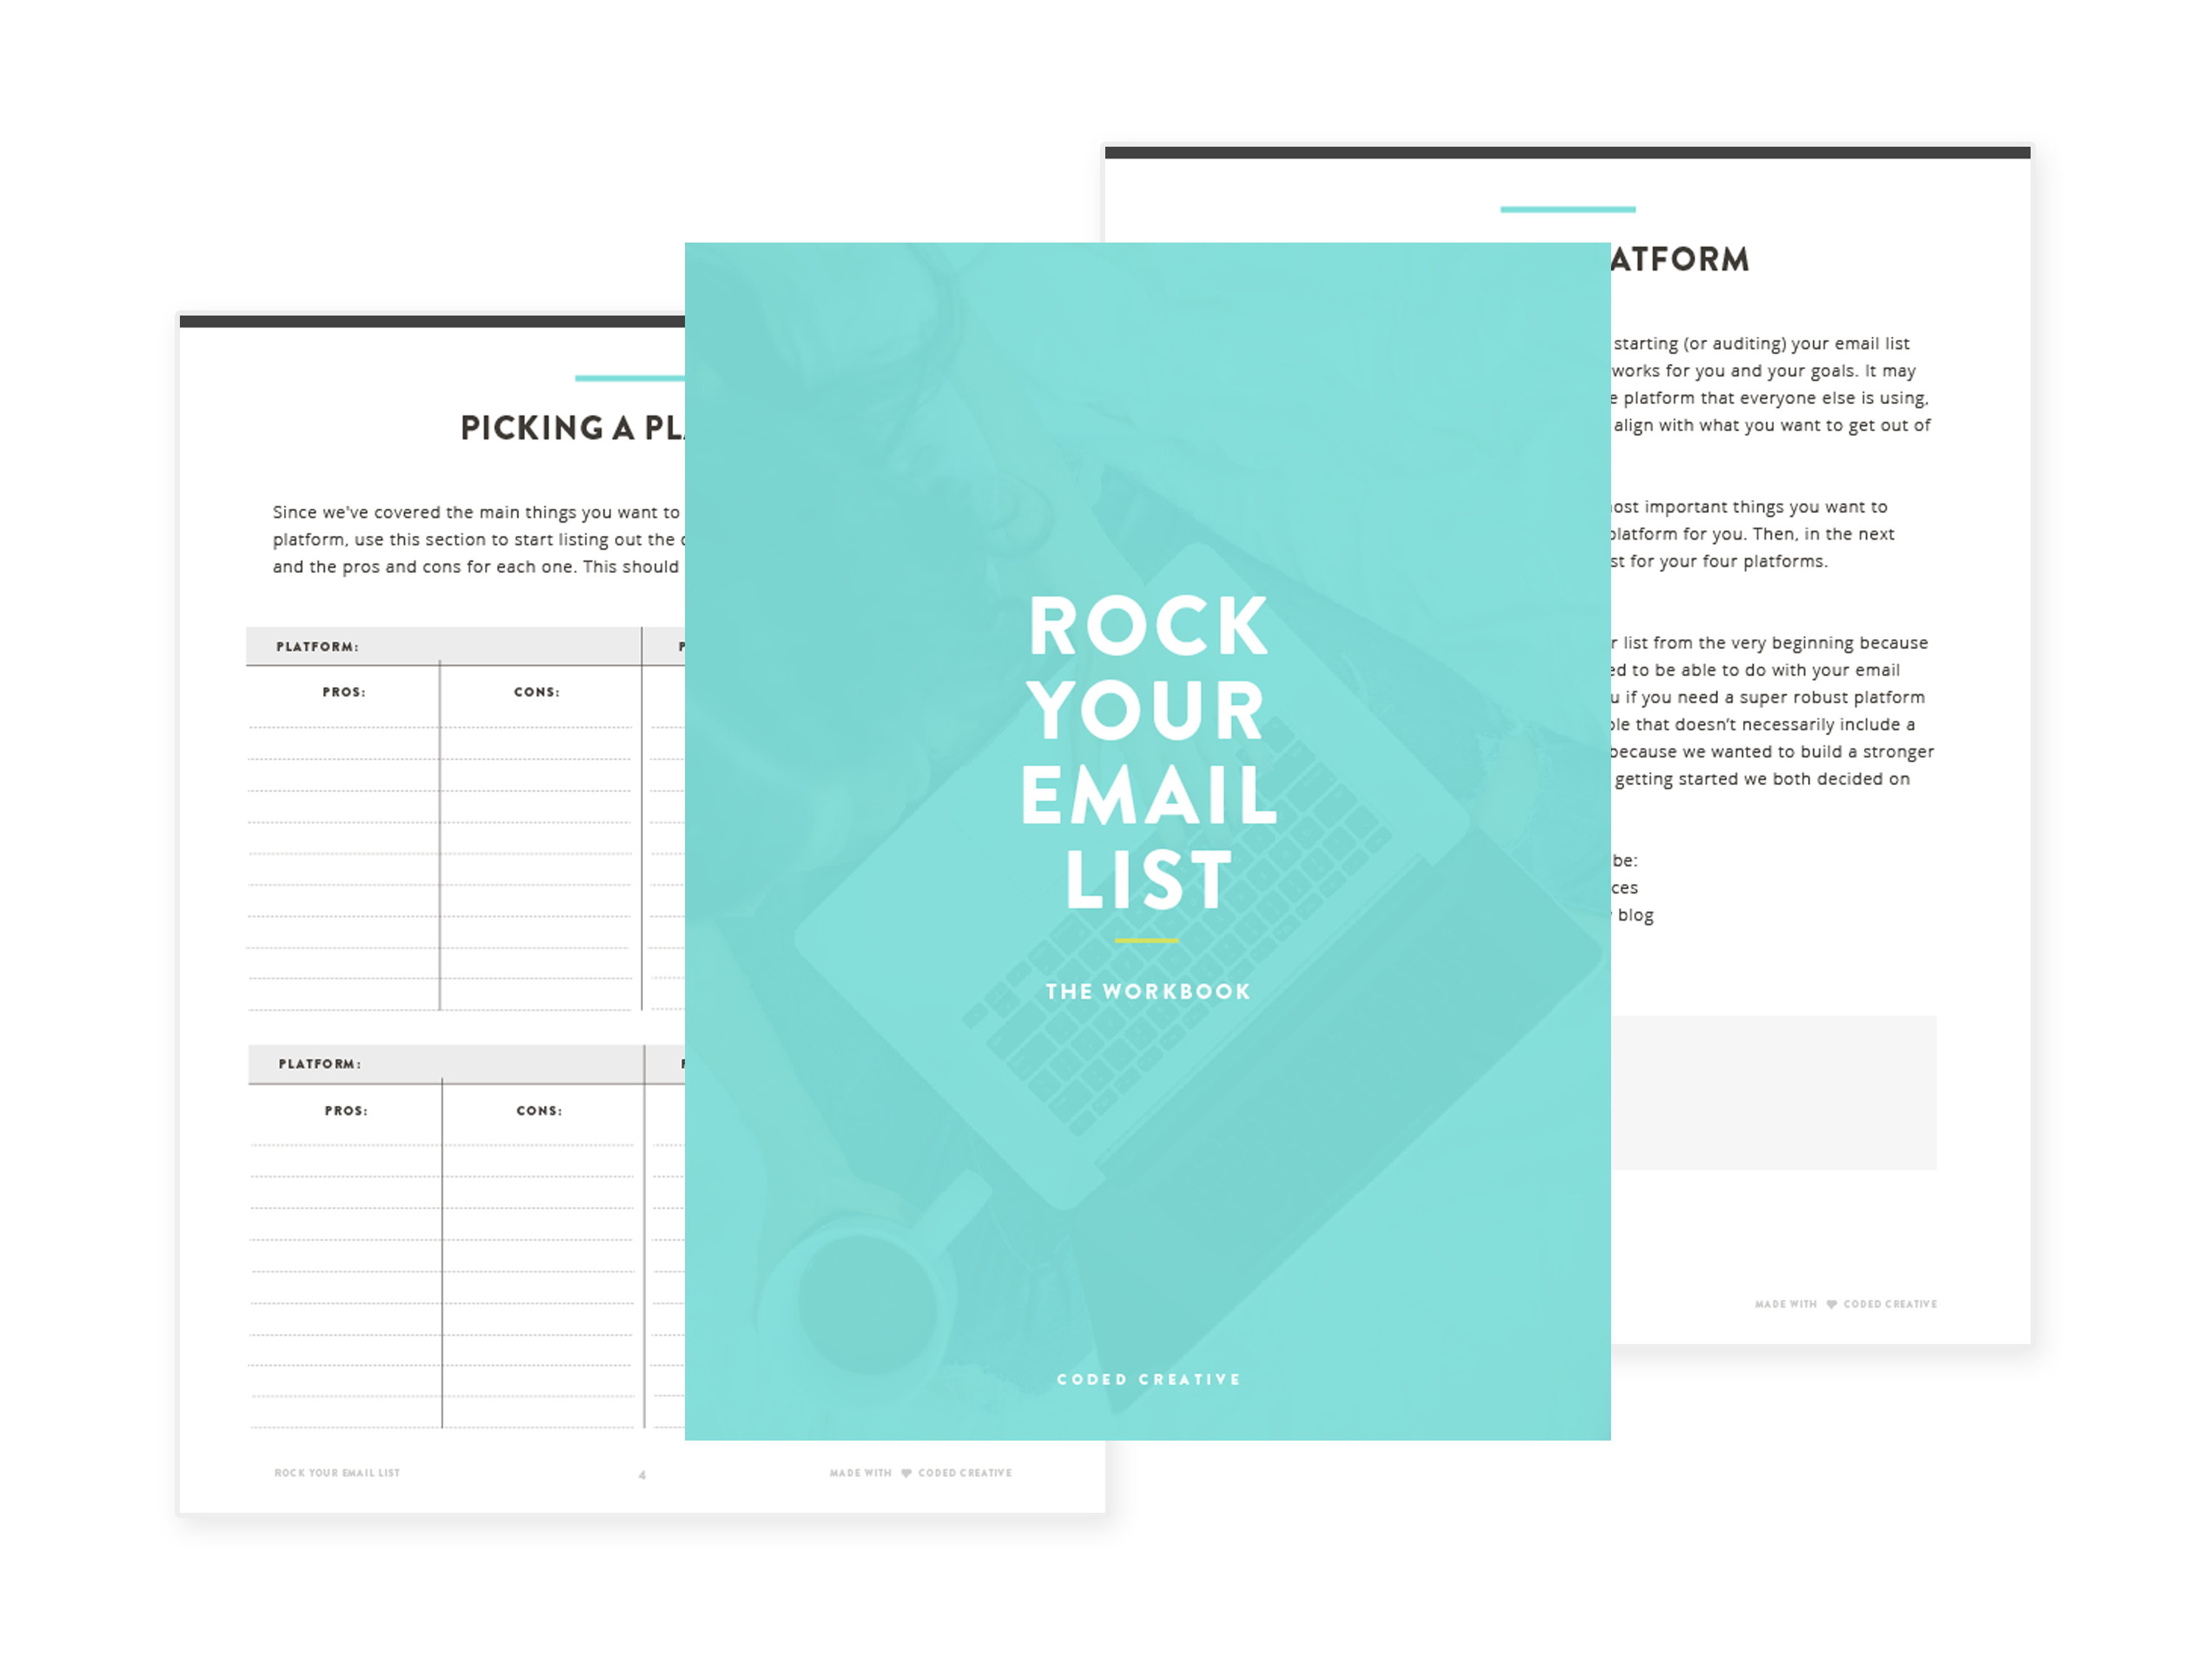 Rock Your Email List Workbook